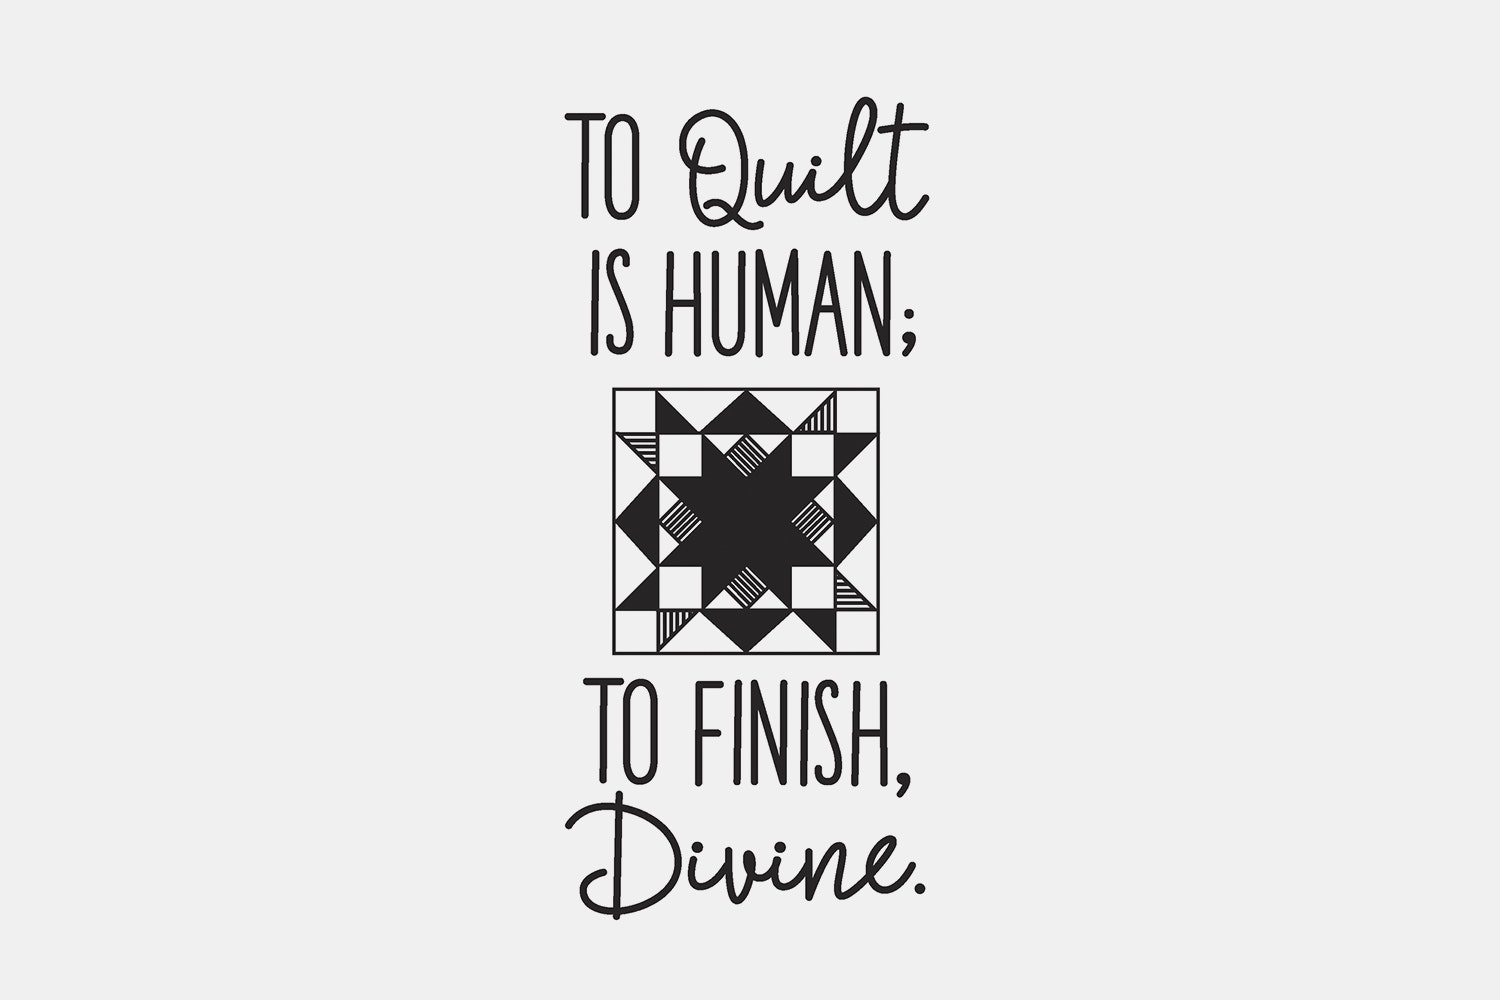 To Quilt Is Human